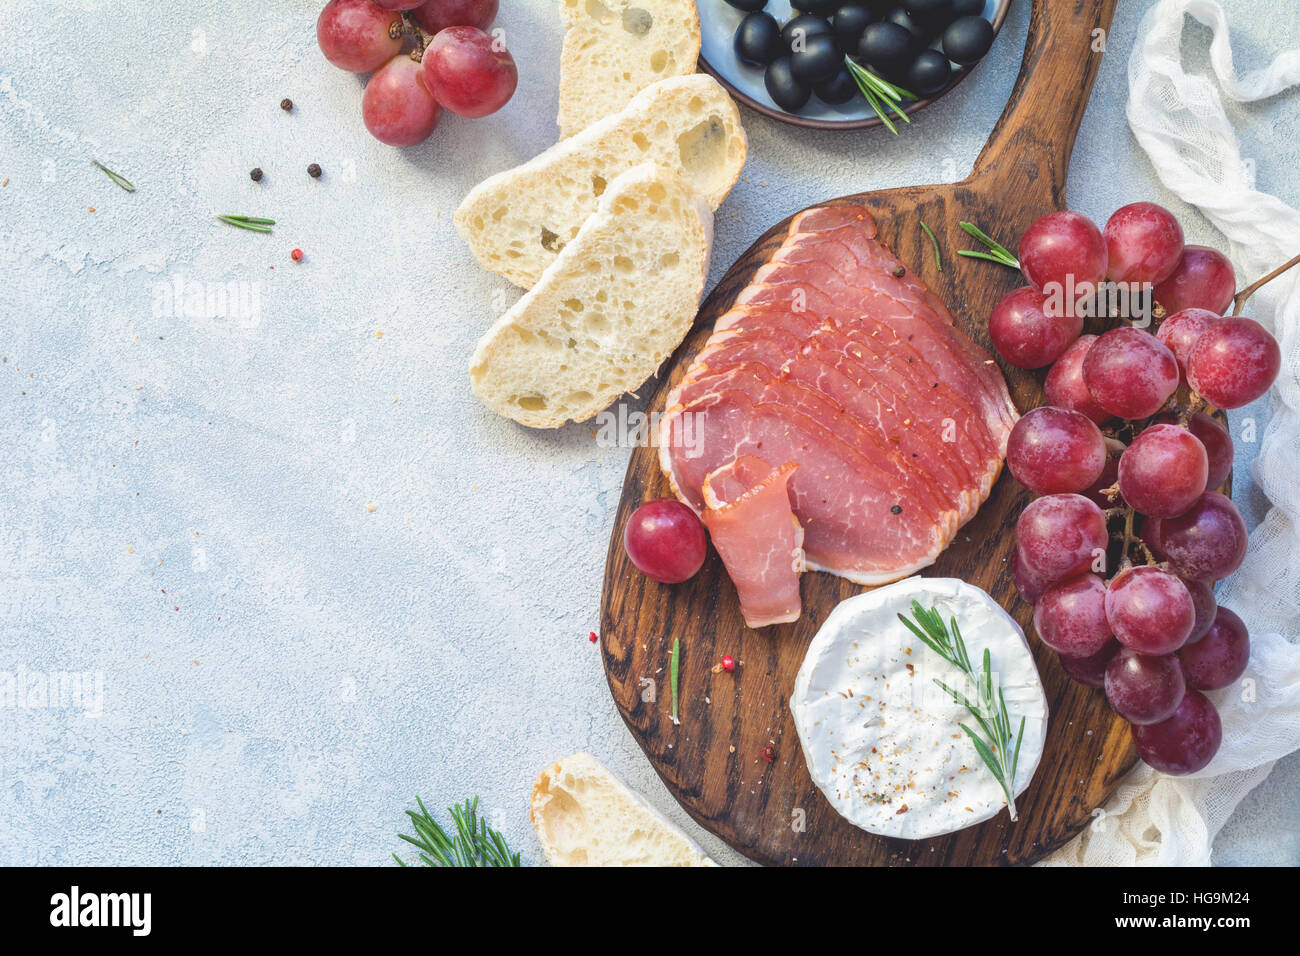 Appetizer plate with fresh baguette, cured meat, grapes, cheese and olives. Antipasti or tapas concept. Top view, - Stock Image